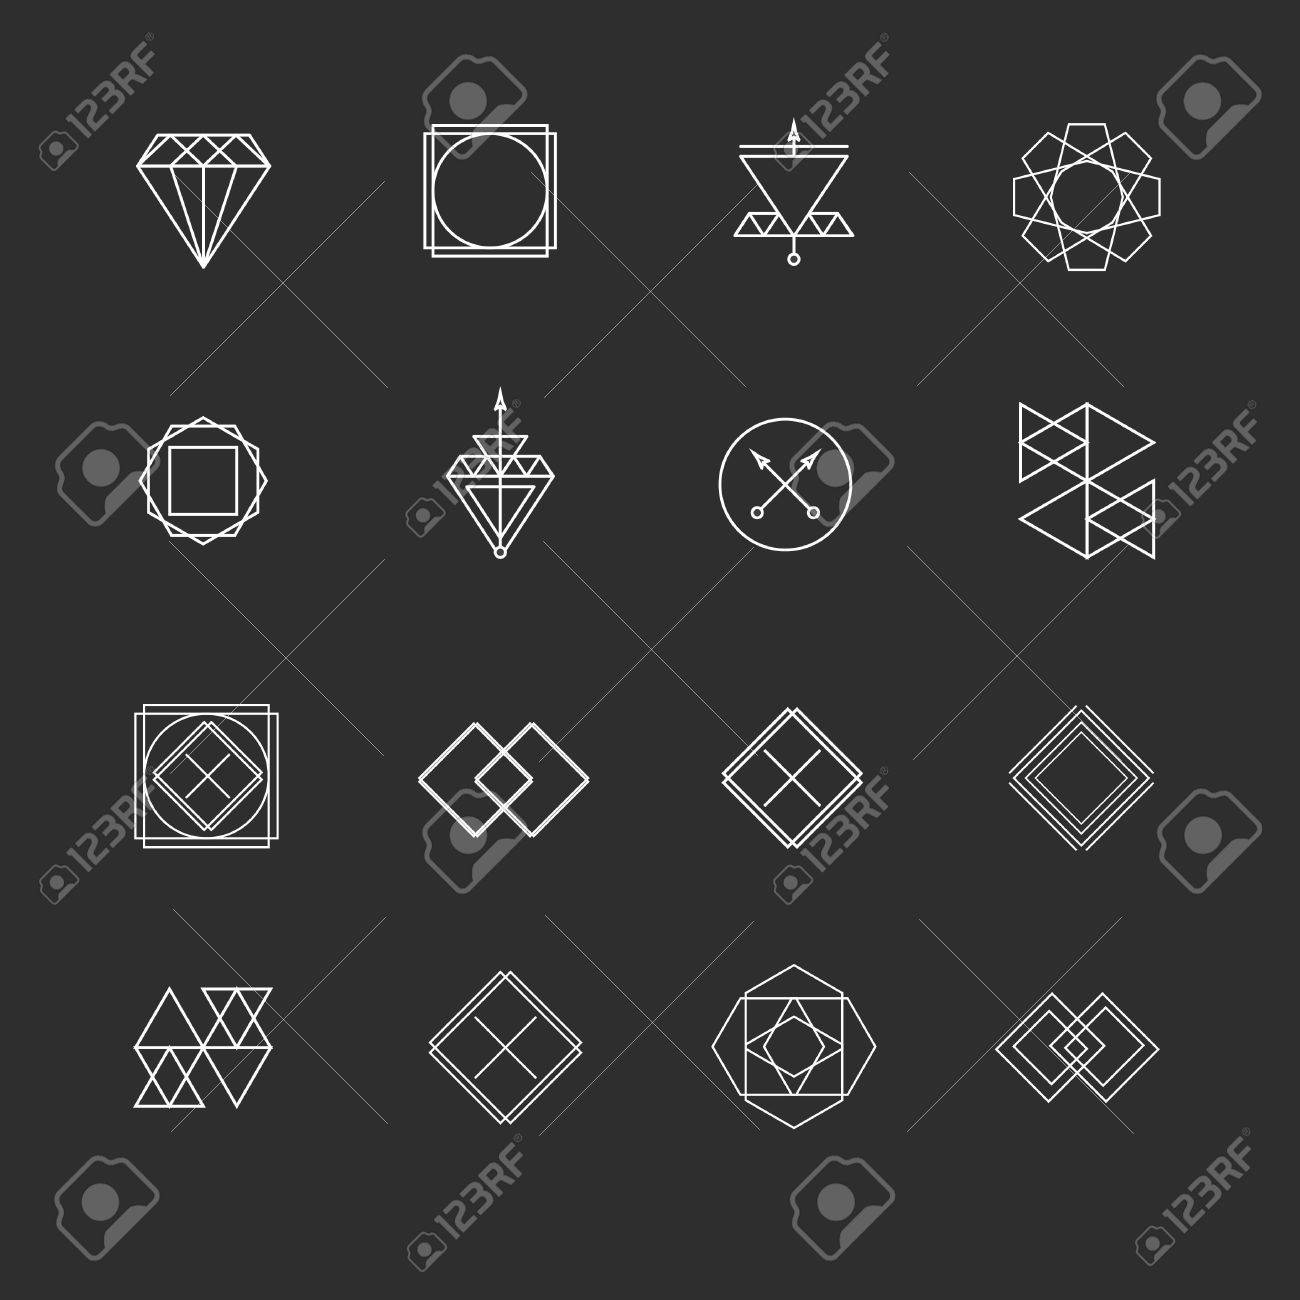 Vector Line Logos And Icons Line Design Elements For Invitations